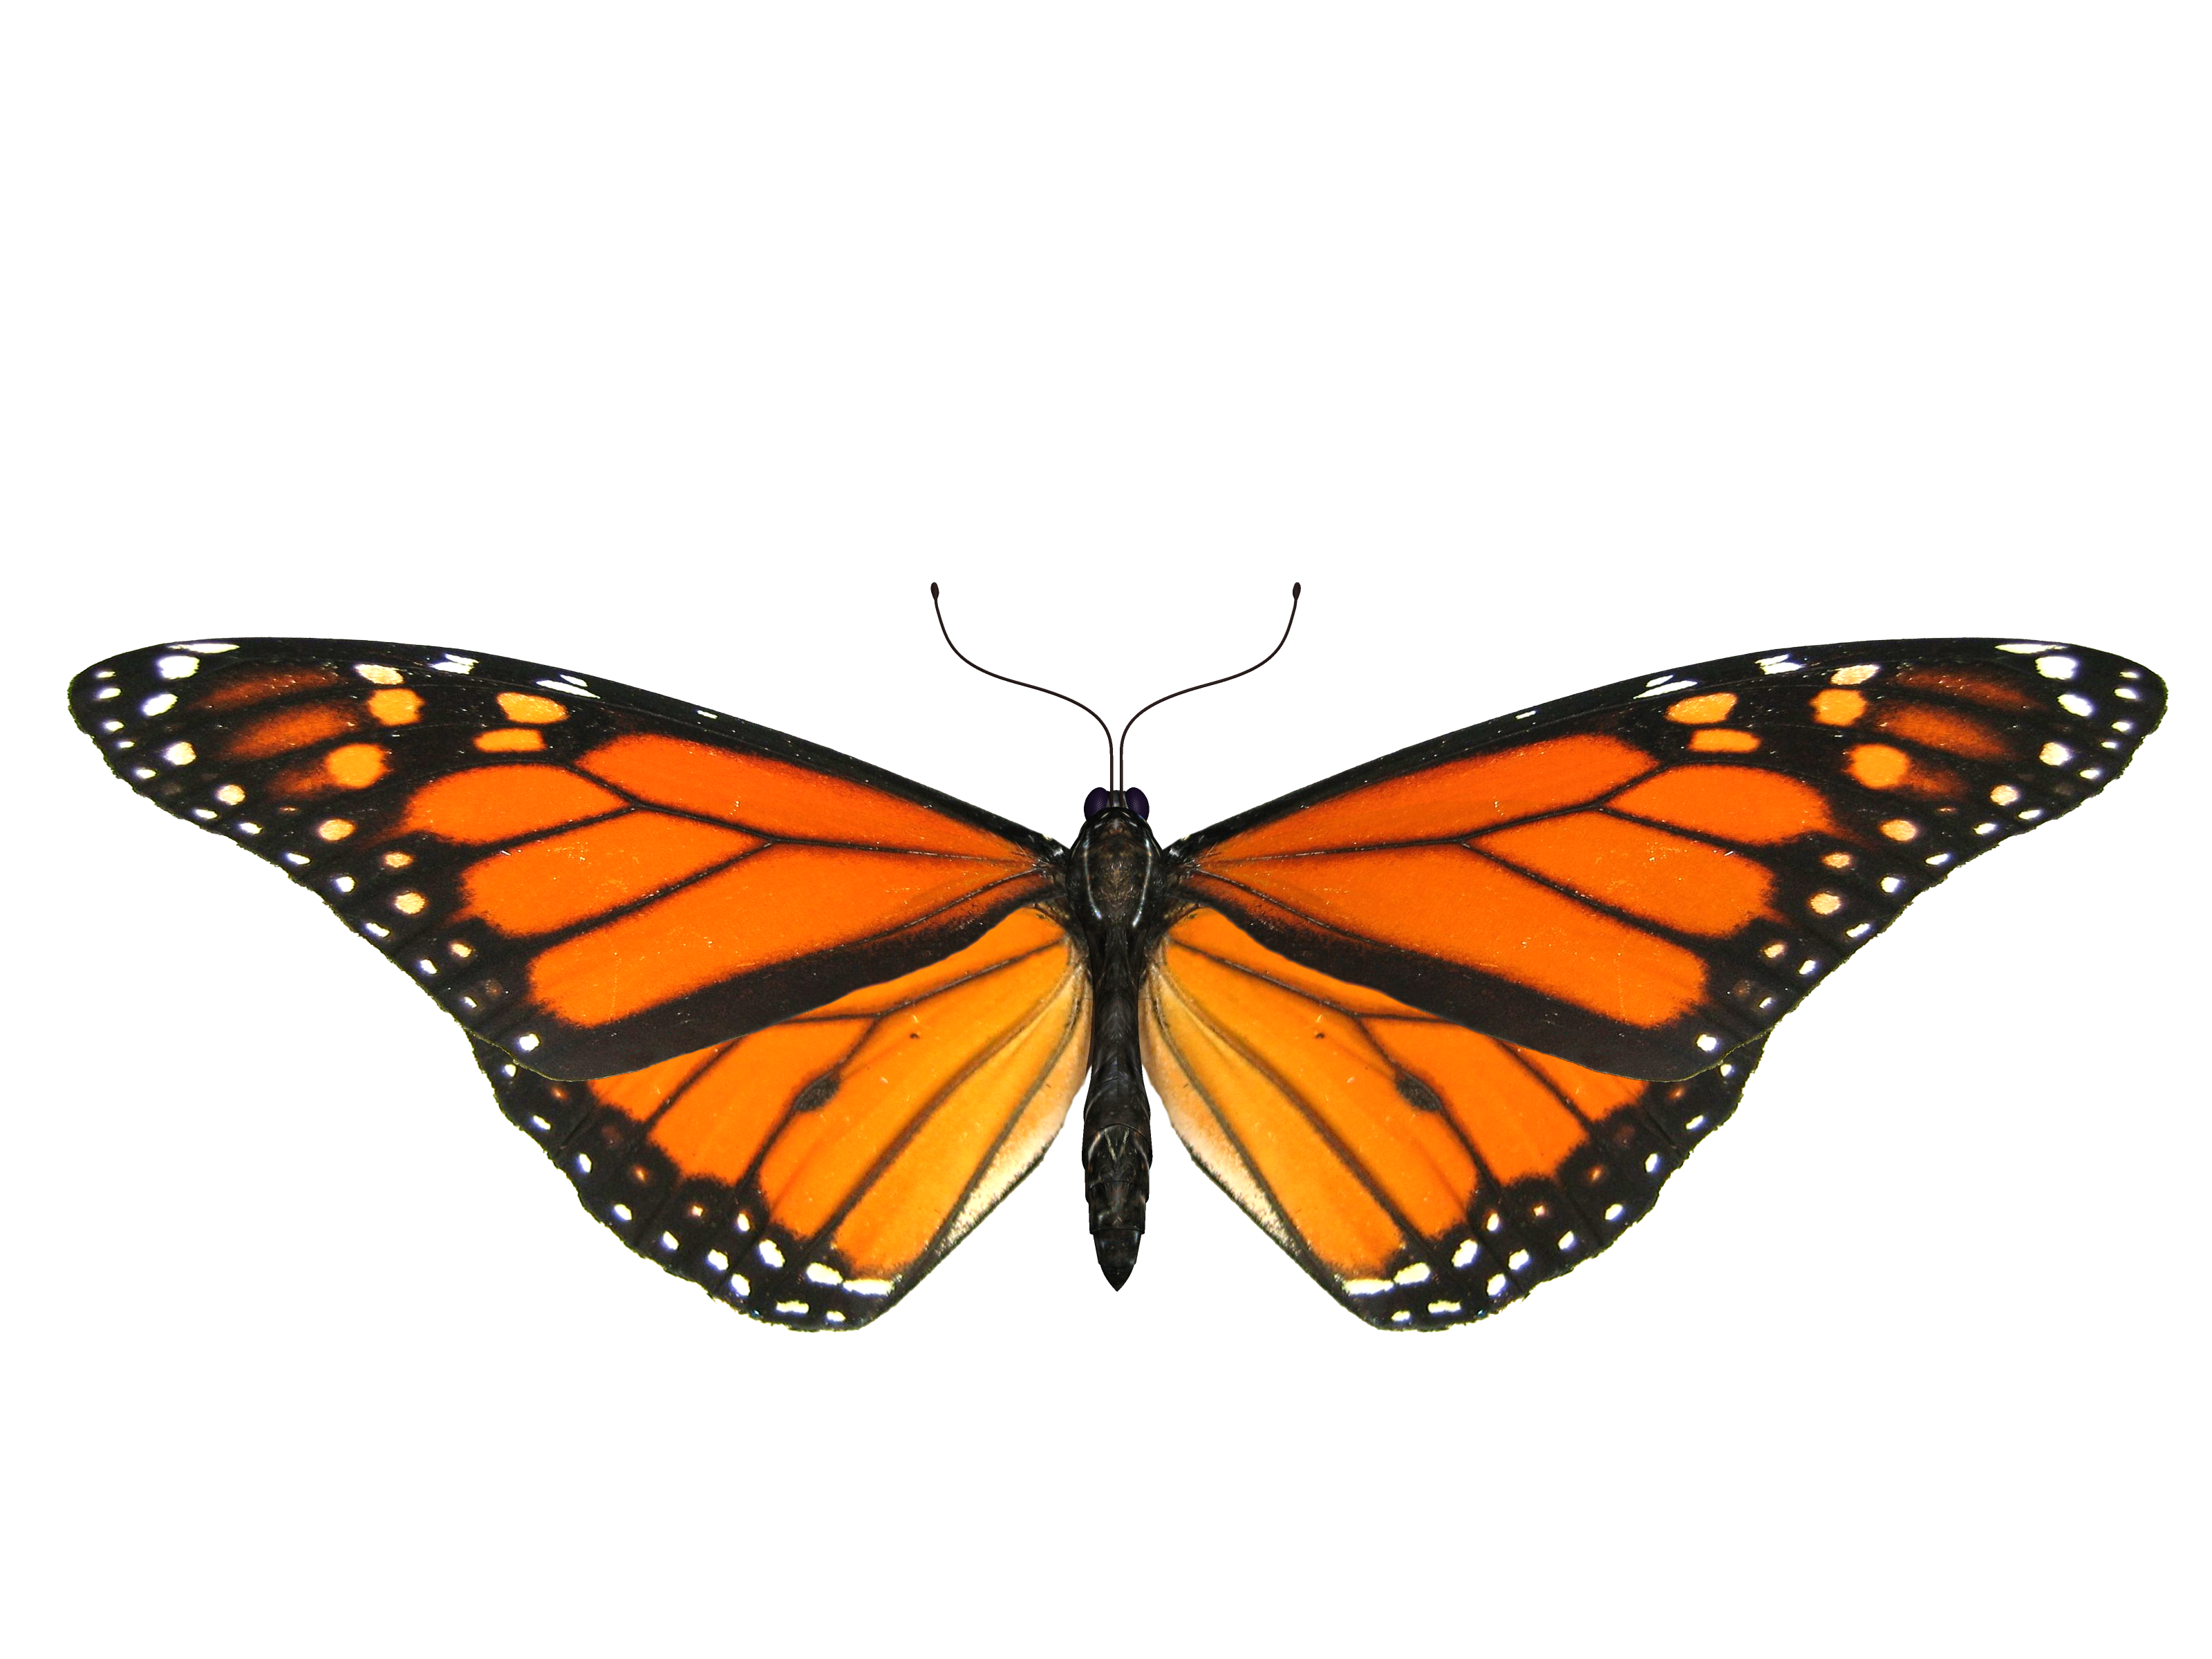 Butterflies png transparent. Butterfly image free picture